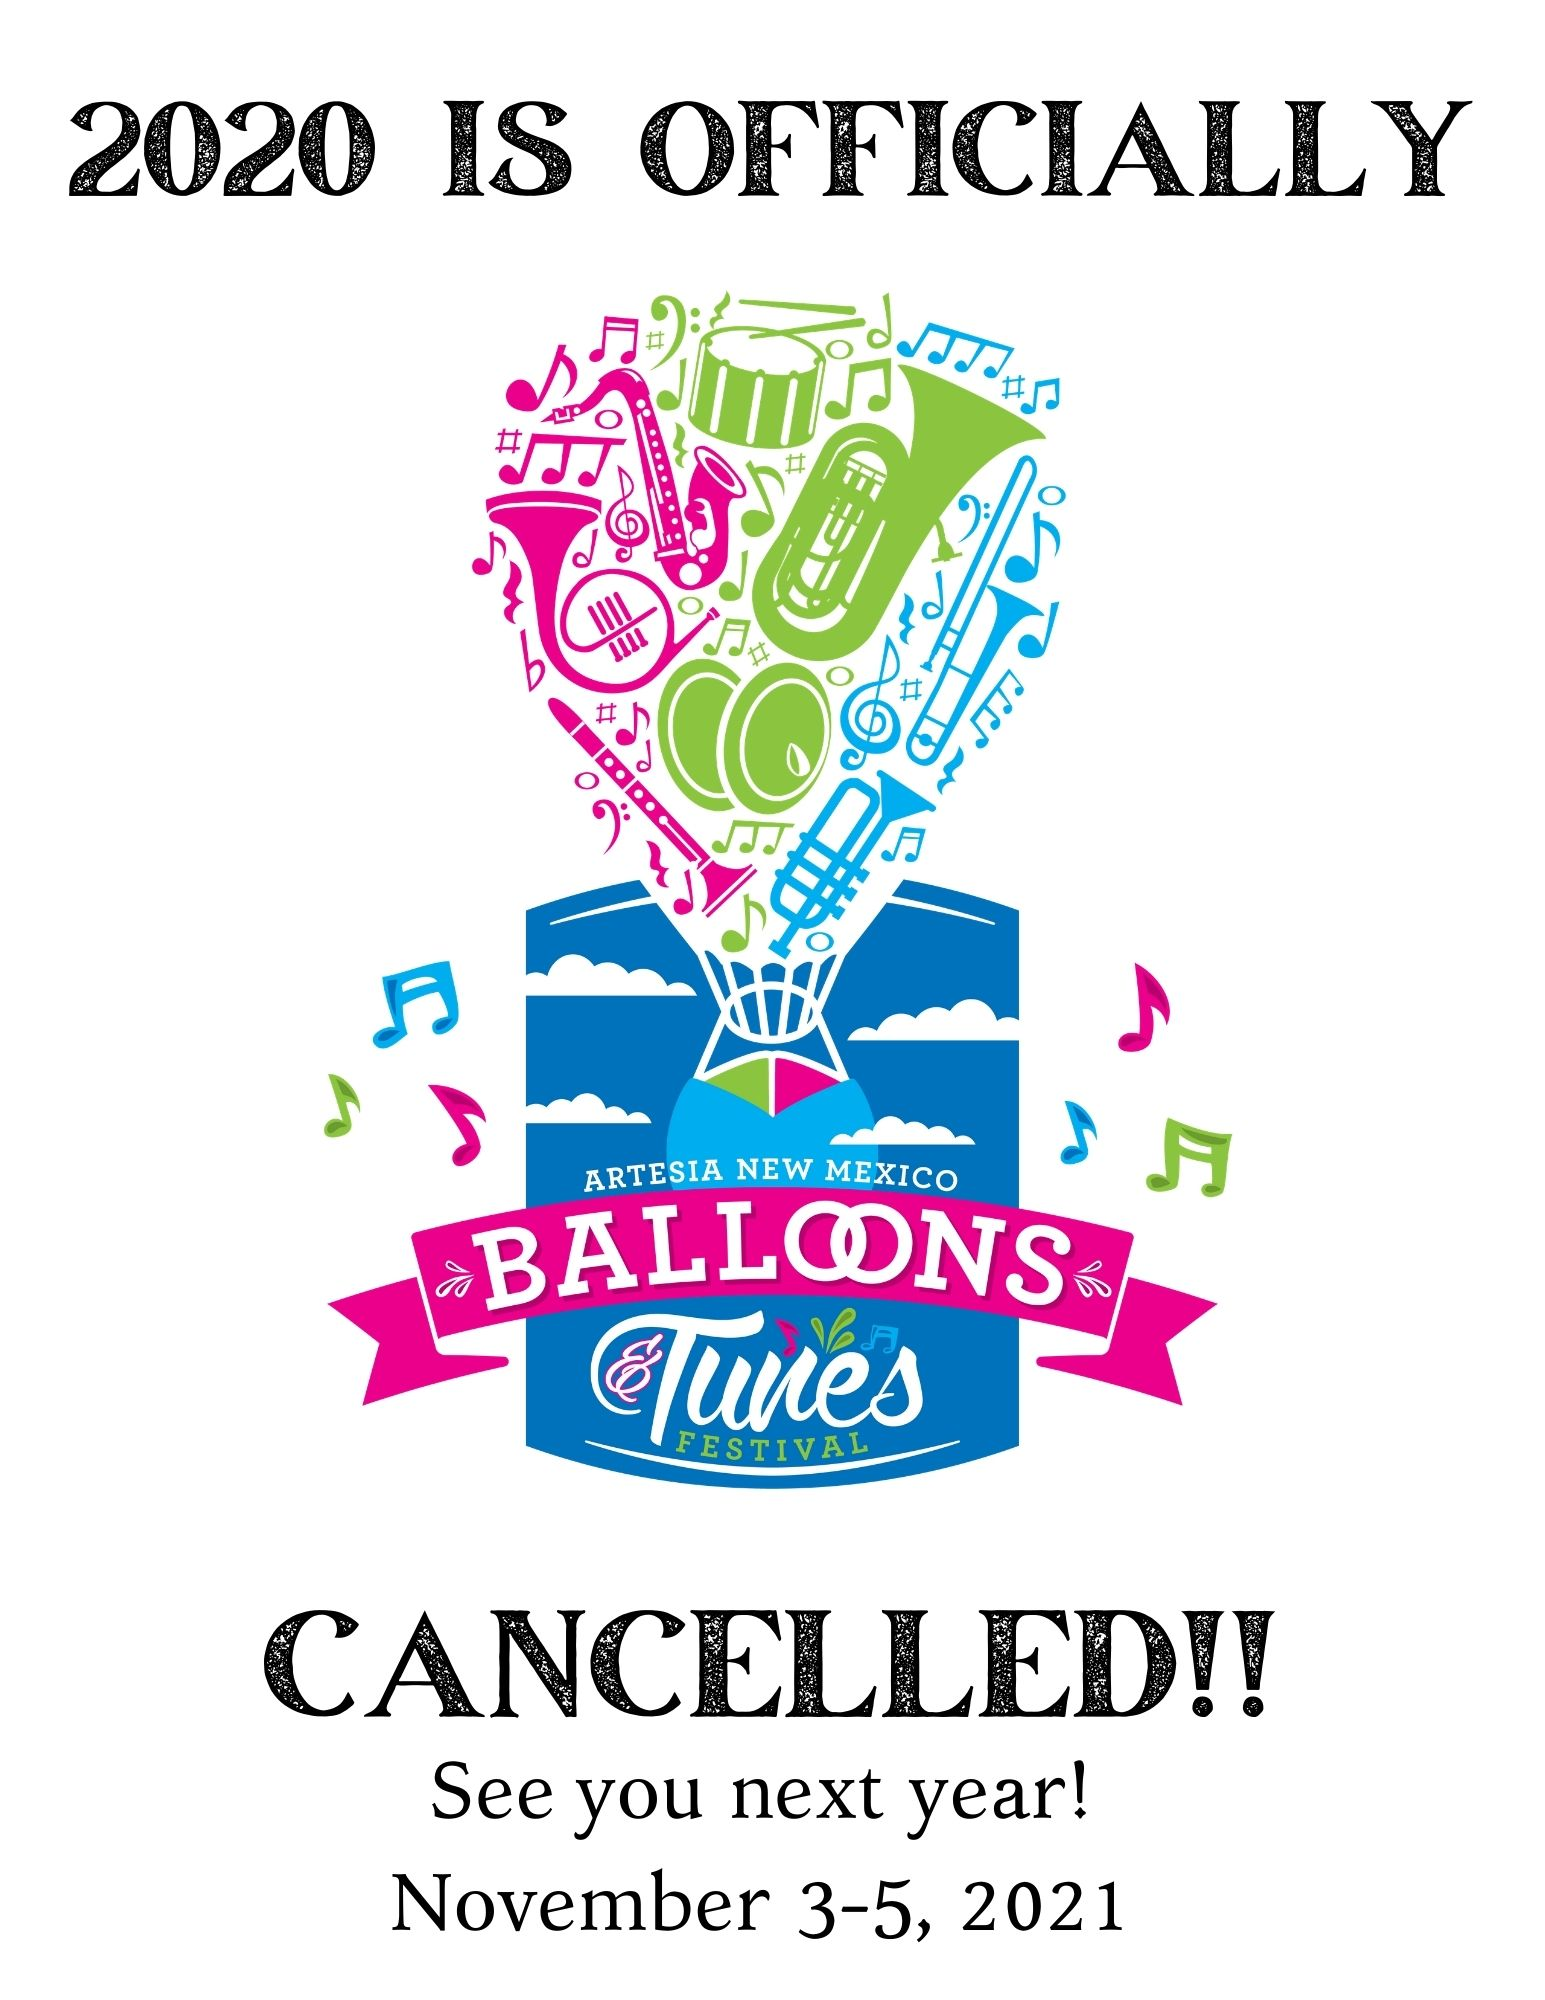 CANCELLED!!